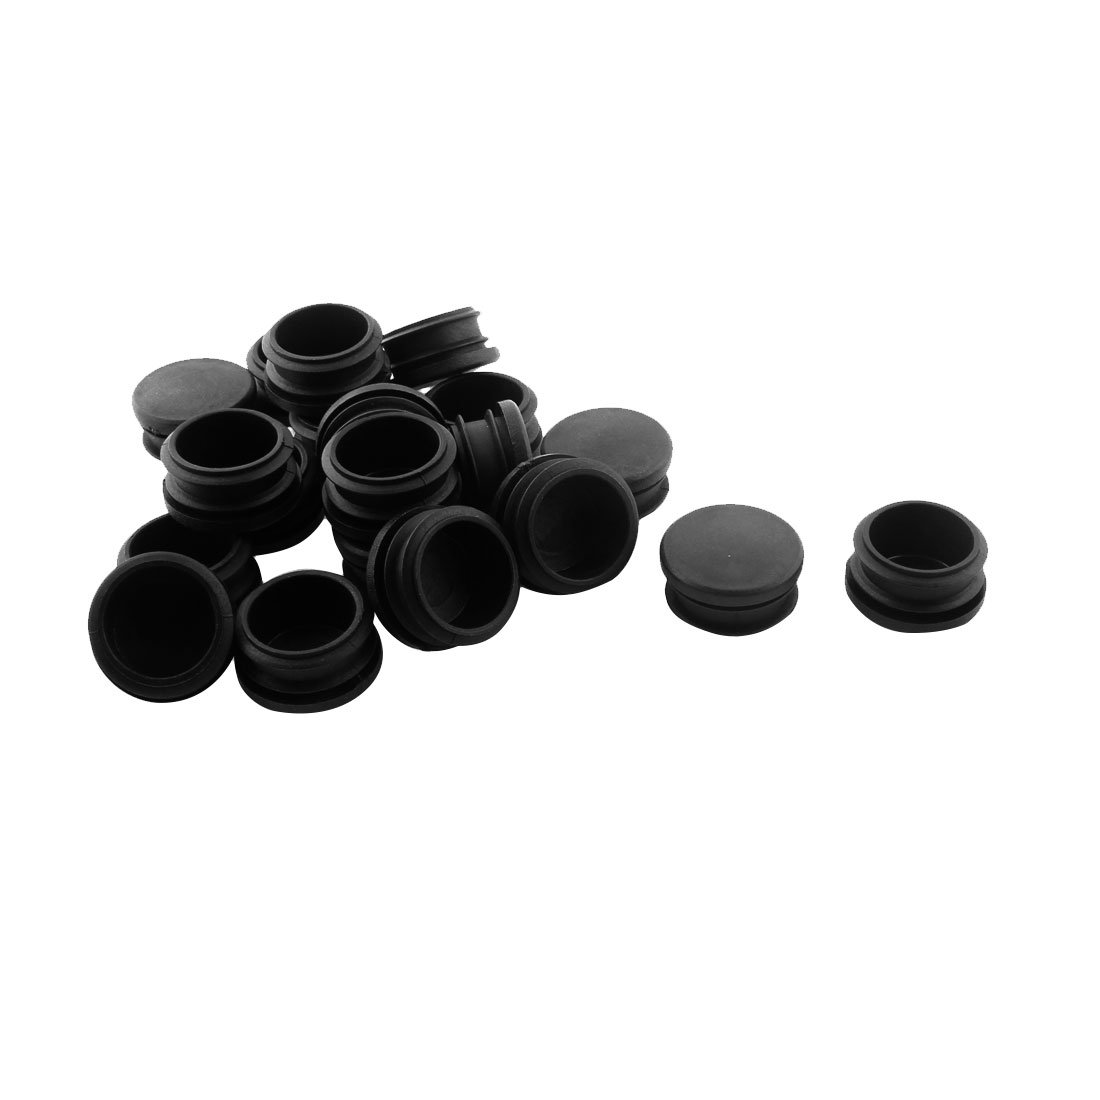 uxcell Round Table Chair Leg Tube Pipe Insert End Cap 30mm Dia 20pcs Black